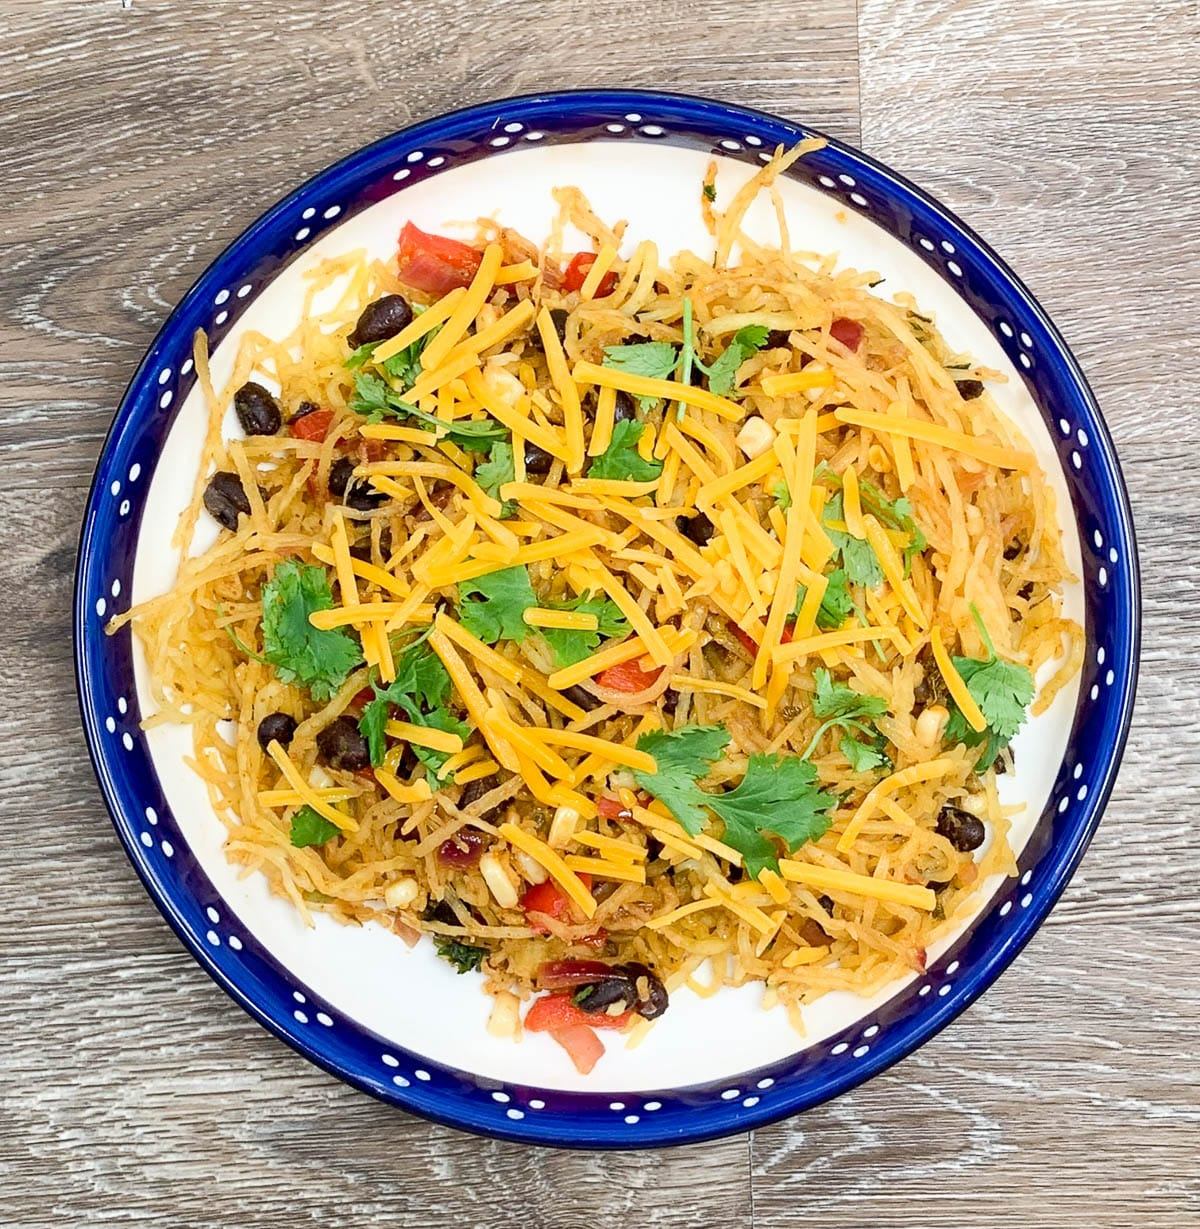 Spaghetti Squash with Peppers and Beans